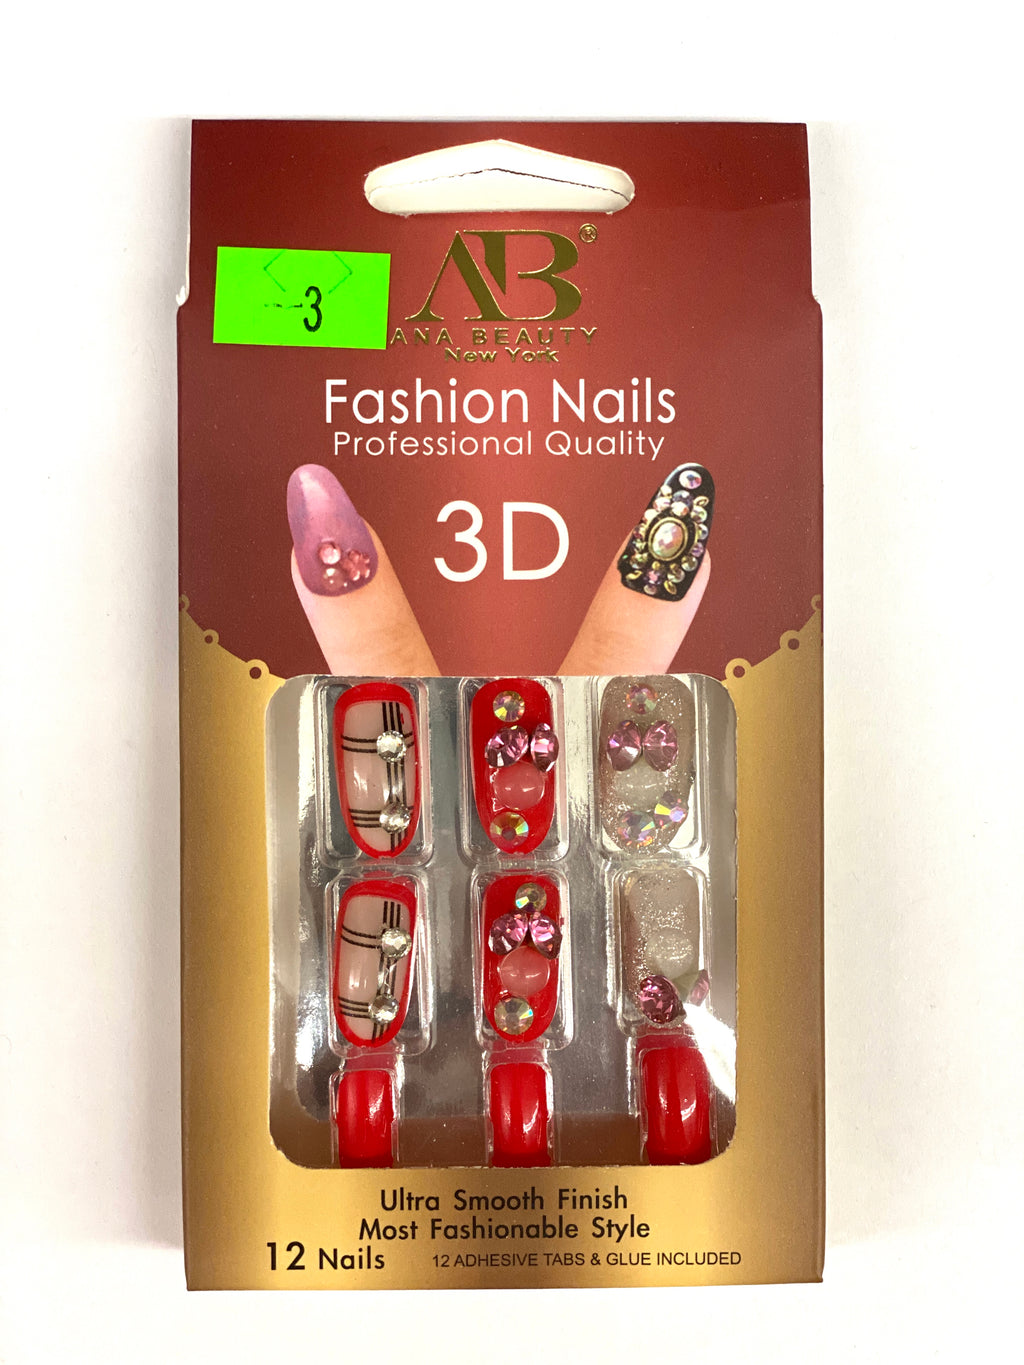 Ana Beauty Fashion Nails 3D - B3